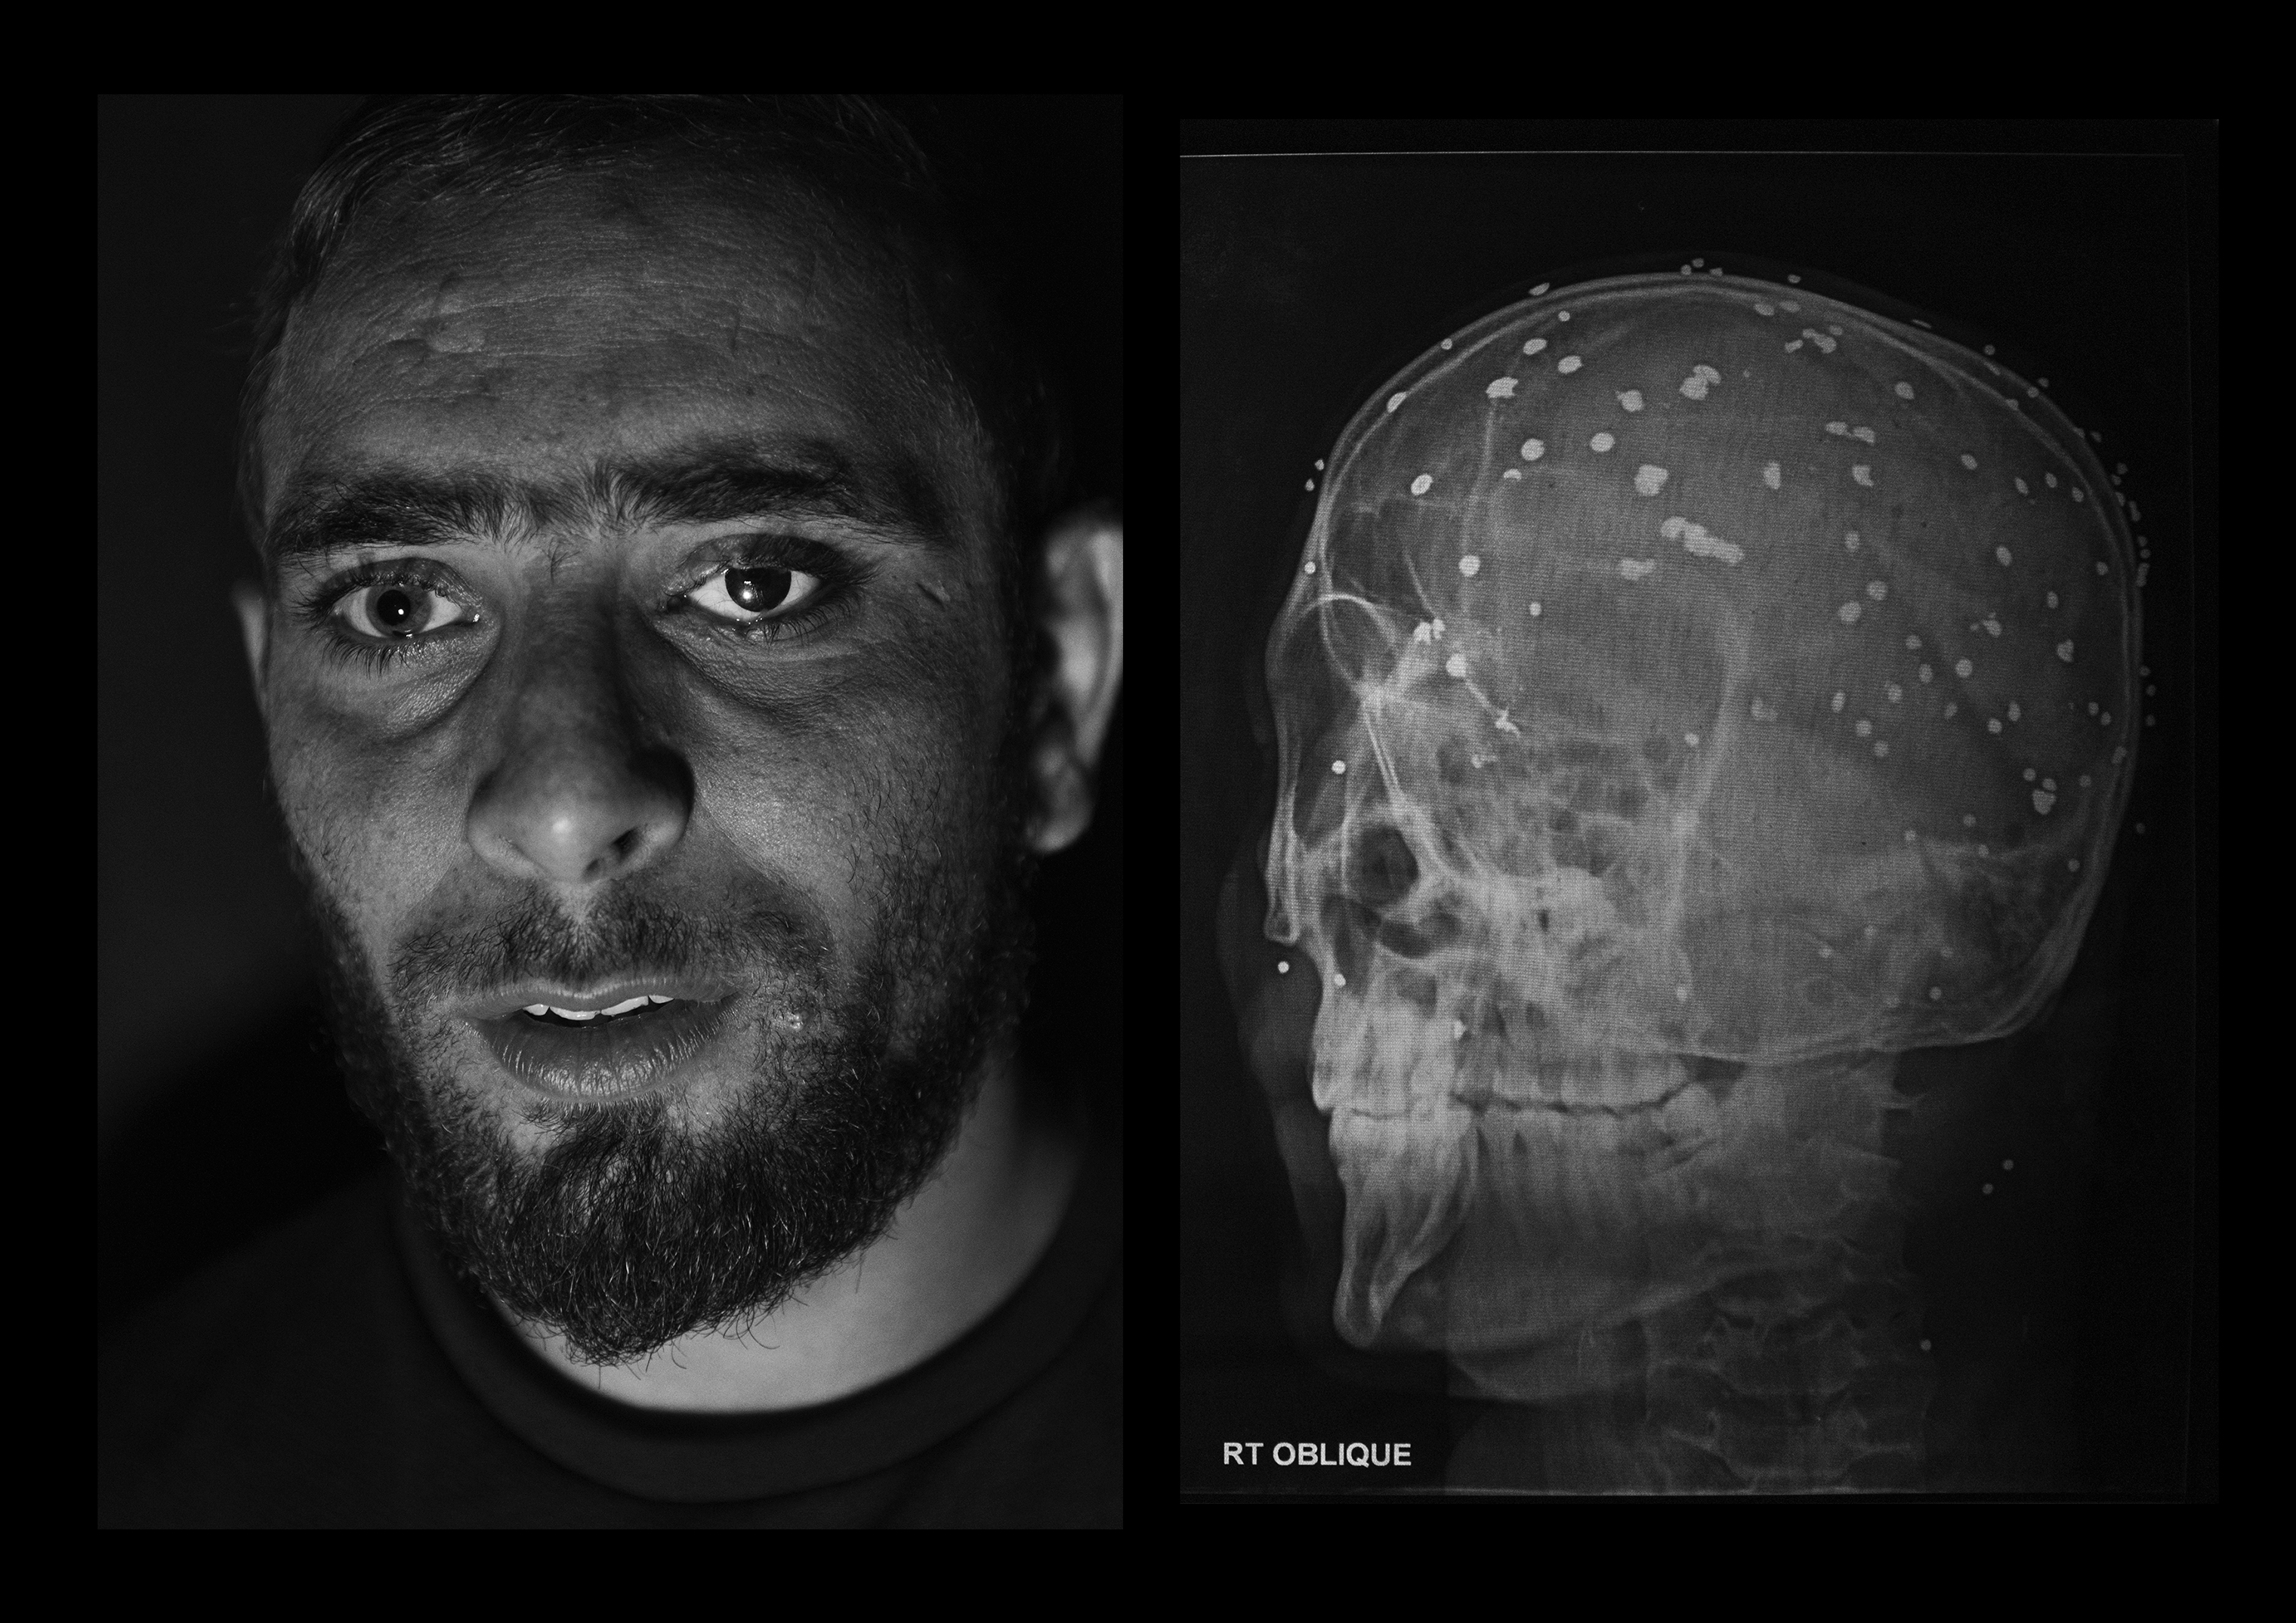 Danish Rajab Jhat, 24 years old, from Srinagar. His left eye was unsalvageable, so doctors replaced it with an artificial eyeball. He still has 90 pellets inside his body and from his right eye he can barely see shadows.